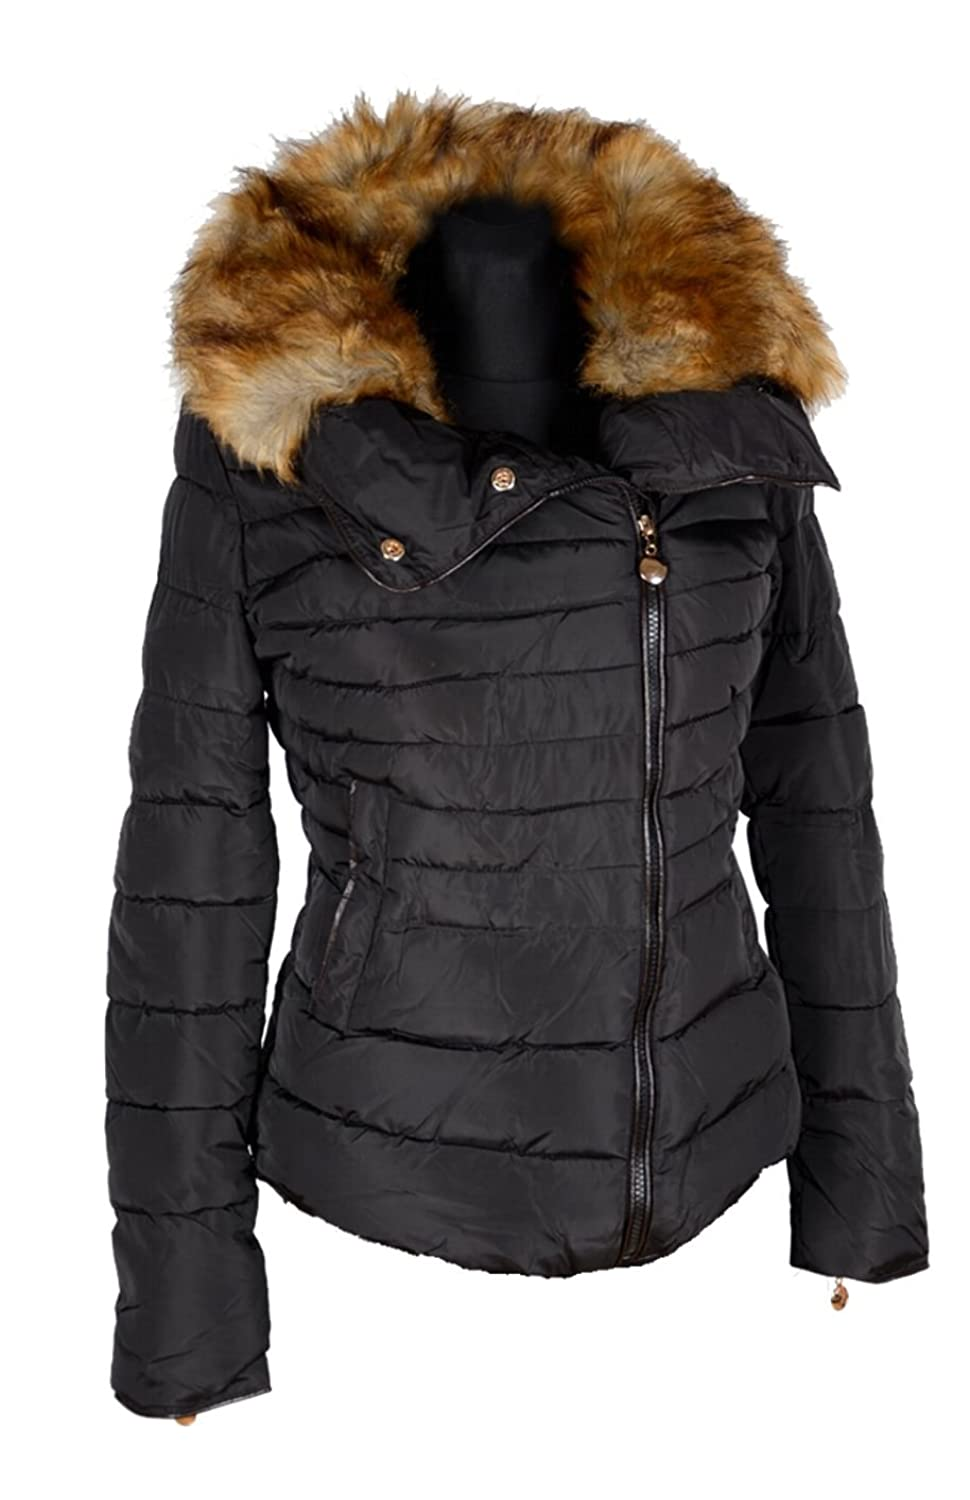 damen winterjacke steppjacke pelz fell volants kragen ballon winter parka jacke kurz mantel 36. Black Bedroom Furniture Sets. Home Design Ideas